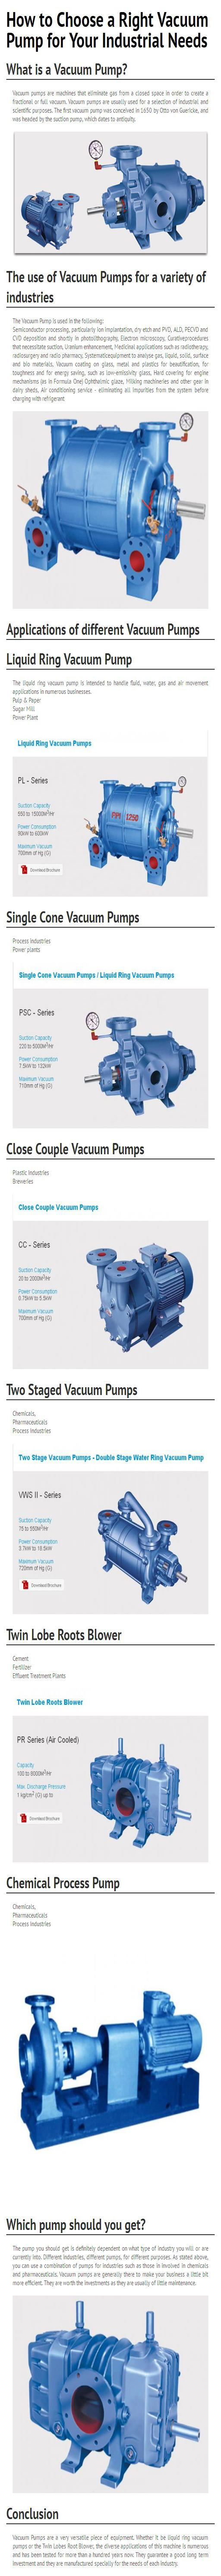 How to Choose a Right Vacuum Pump for Your Industrial Needs